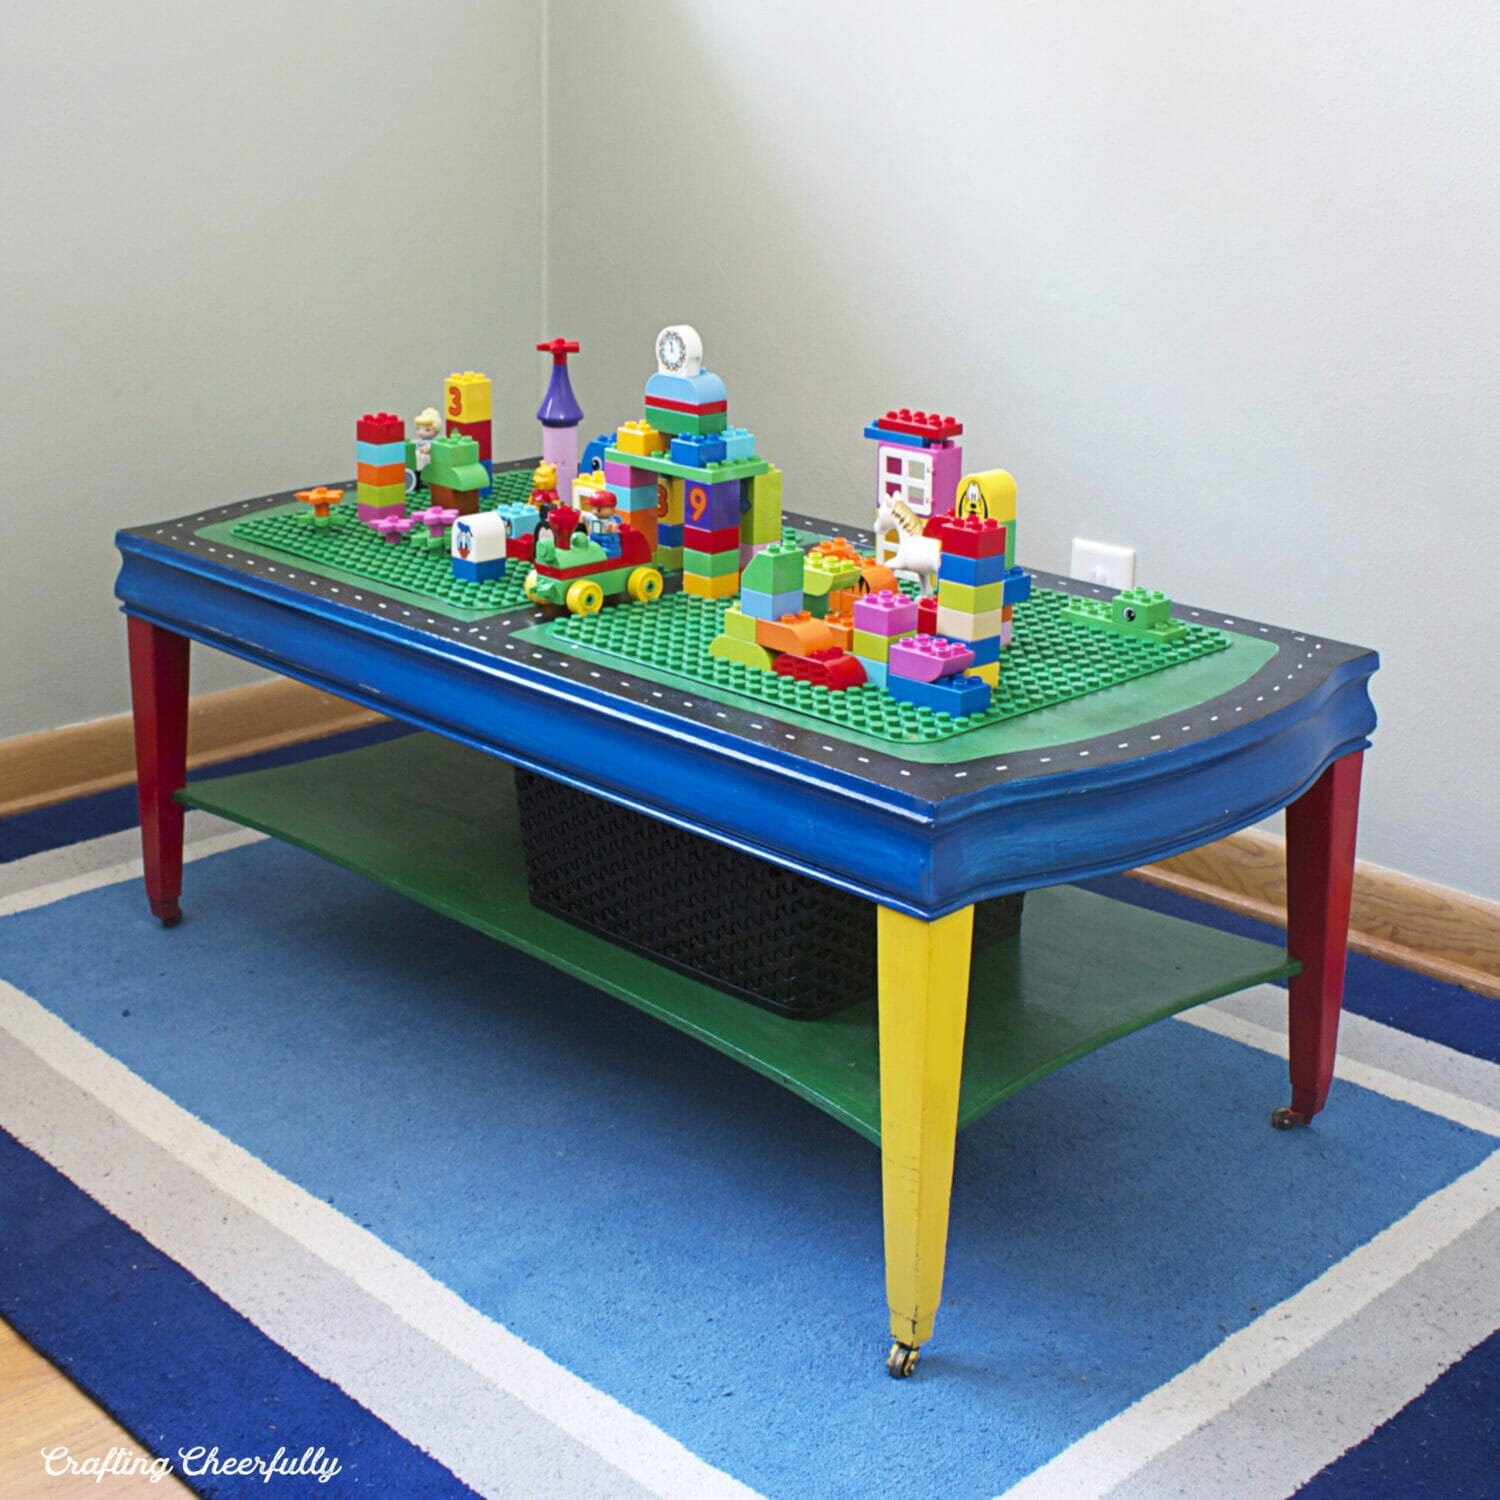 A homemade lego table made with a coffee table sits on a colorful rug.